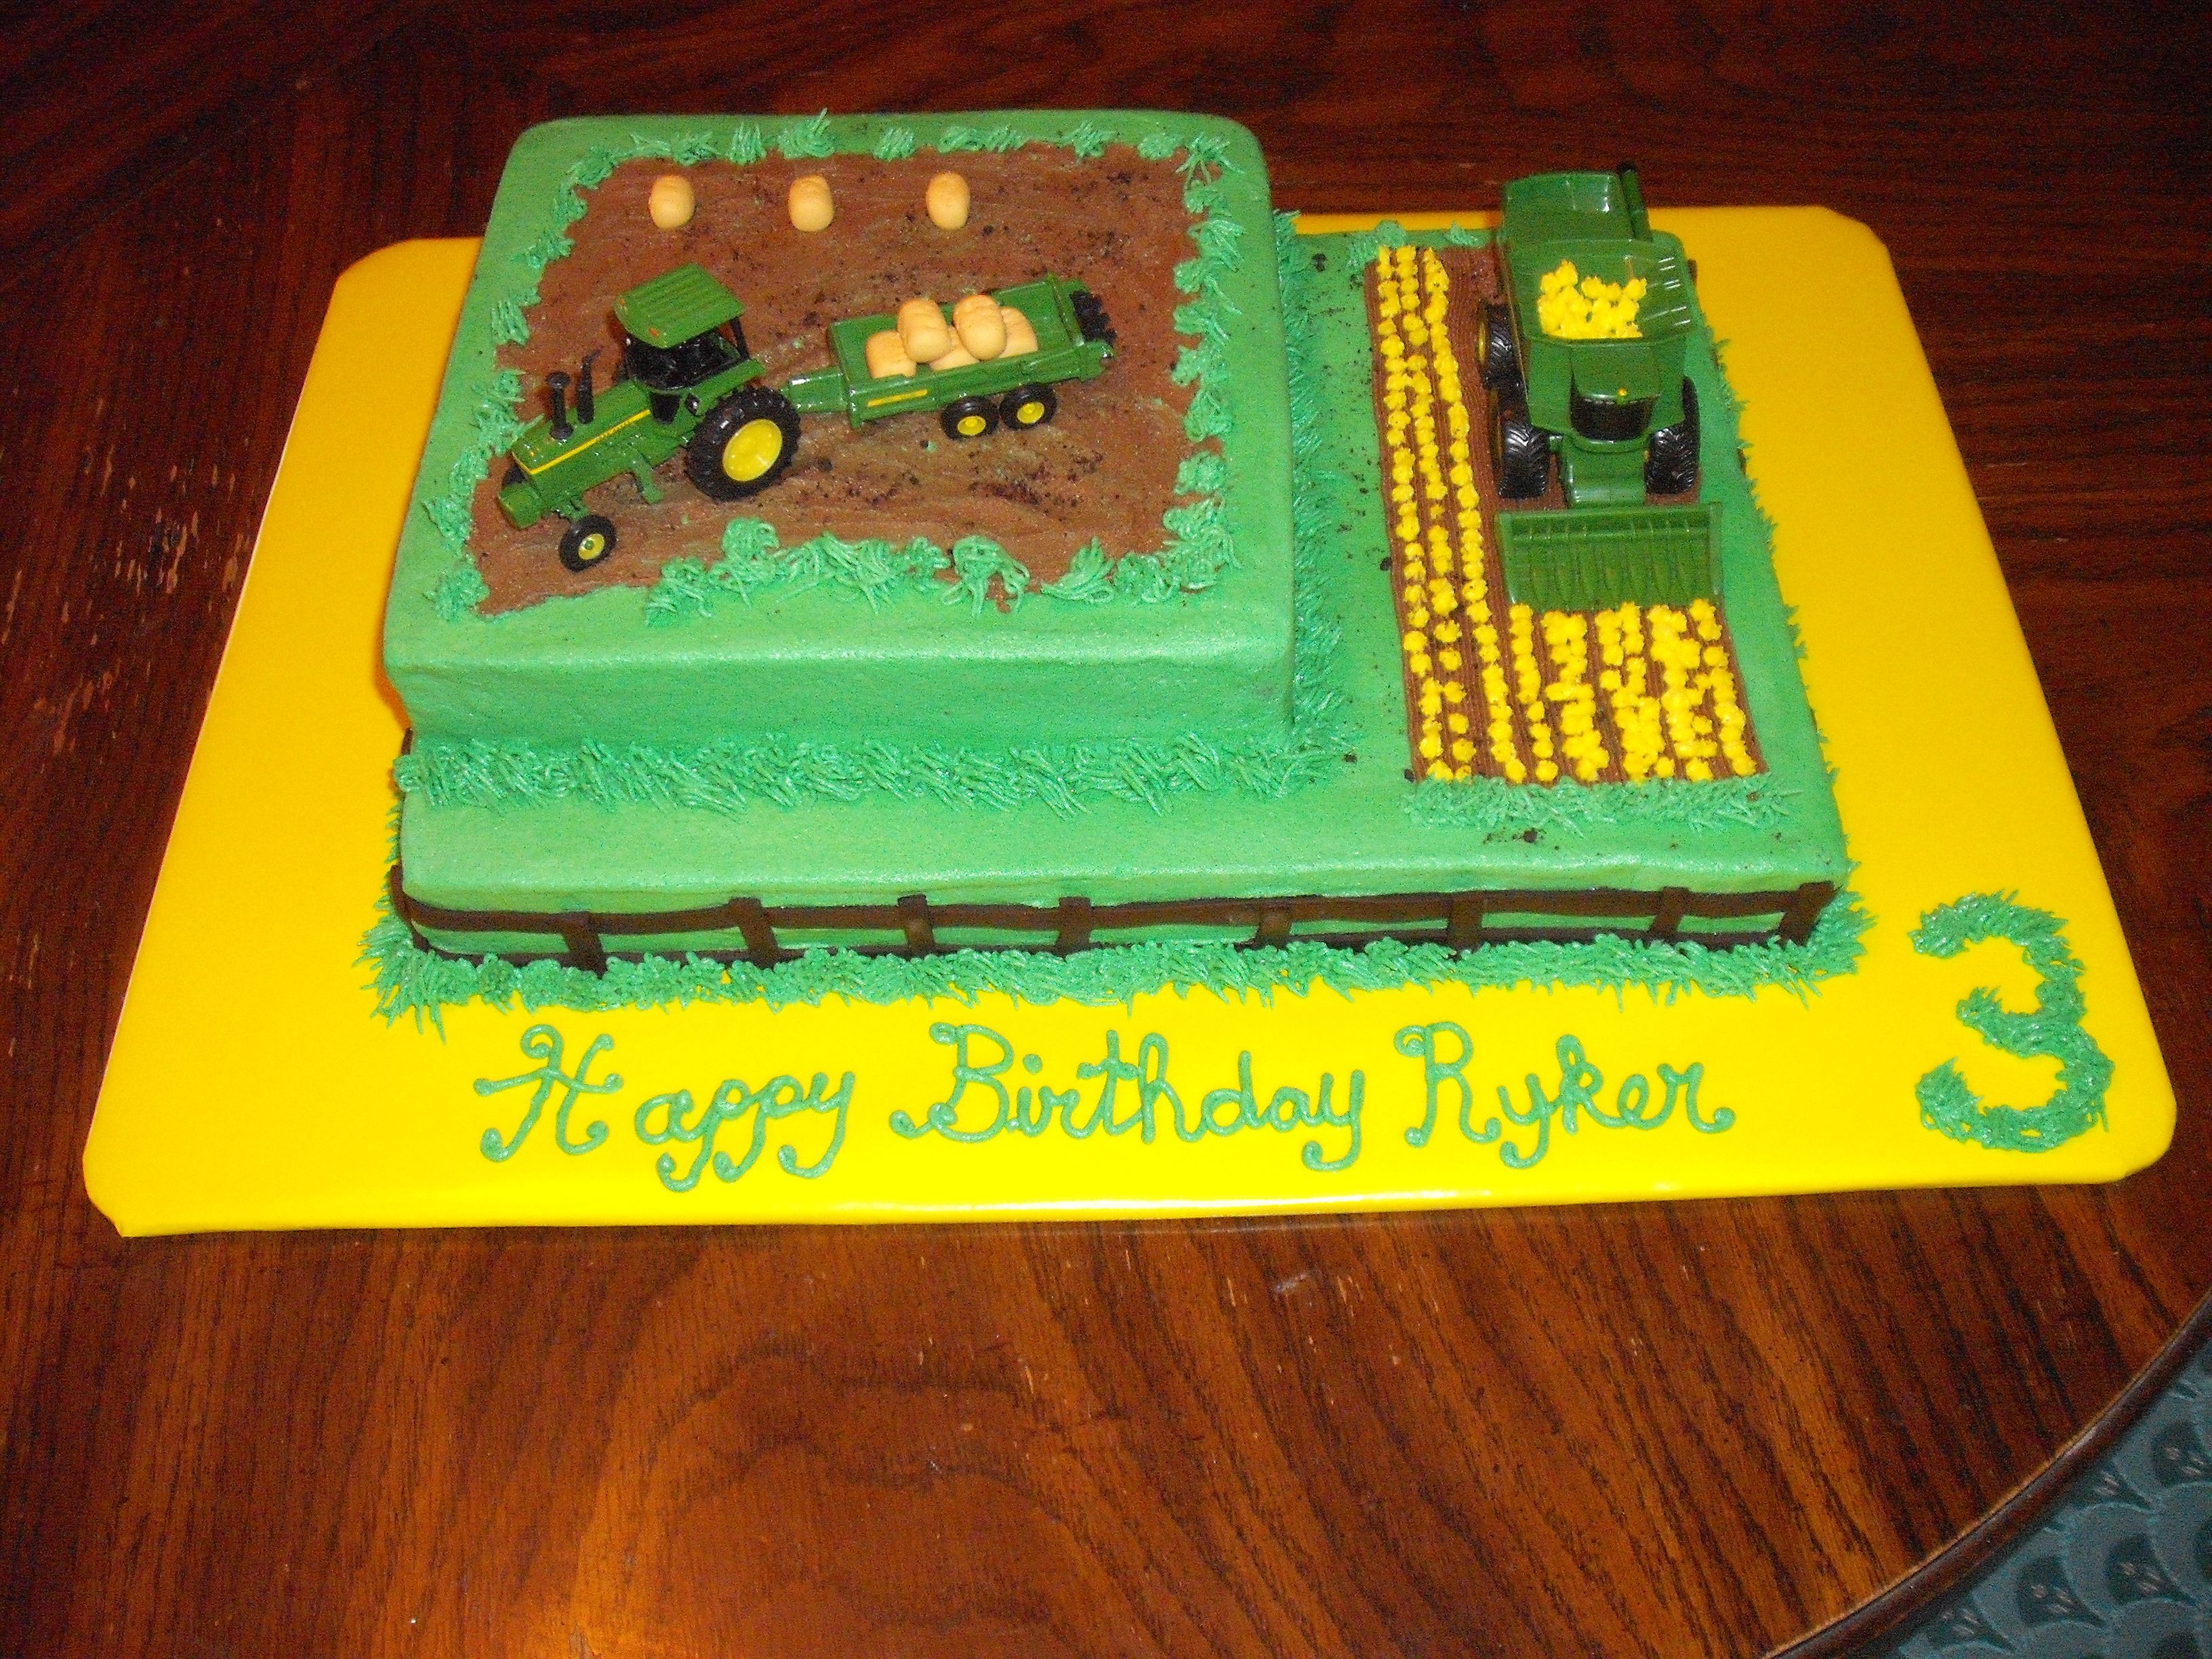 John Deere theme birthday cake complete with tractor bale trailer